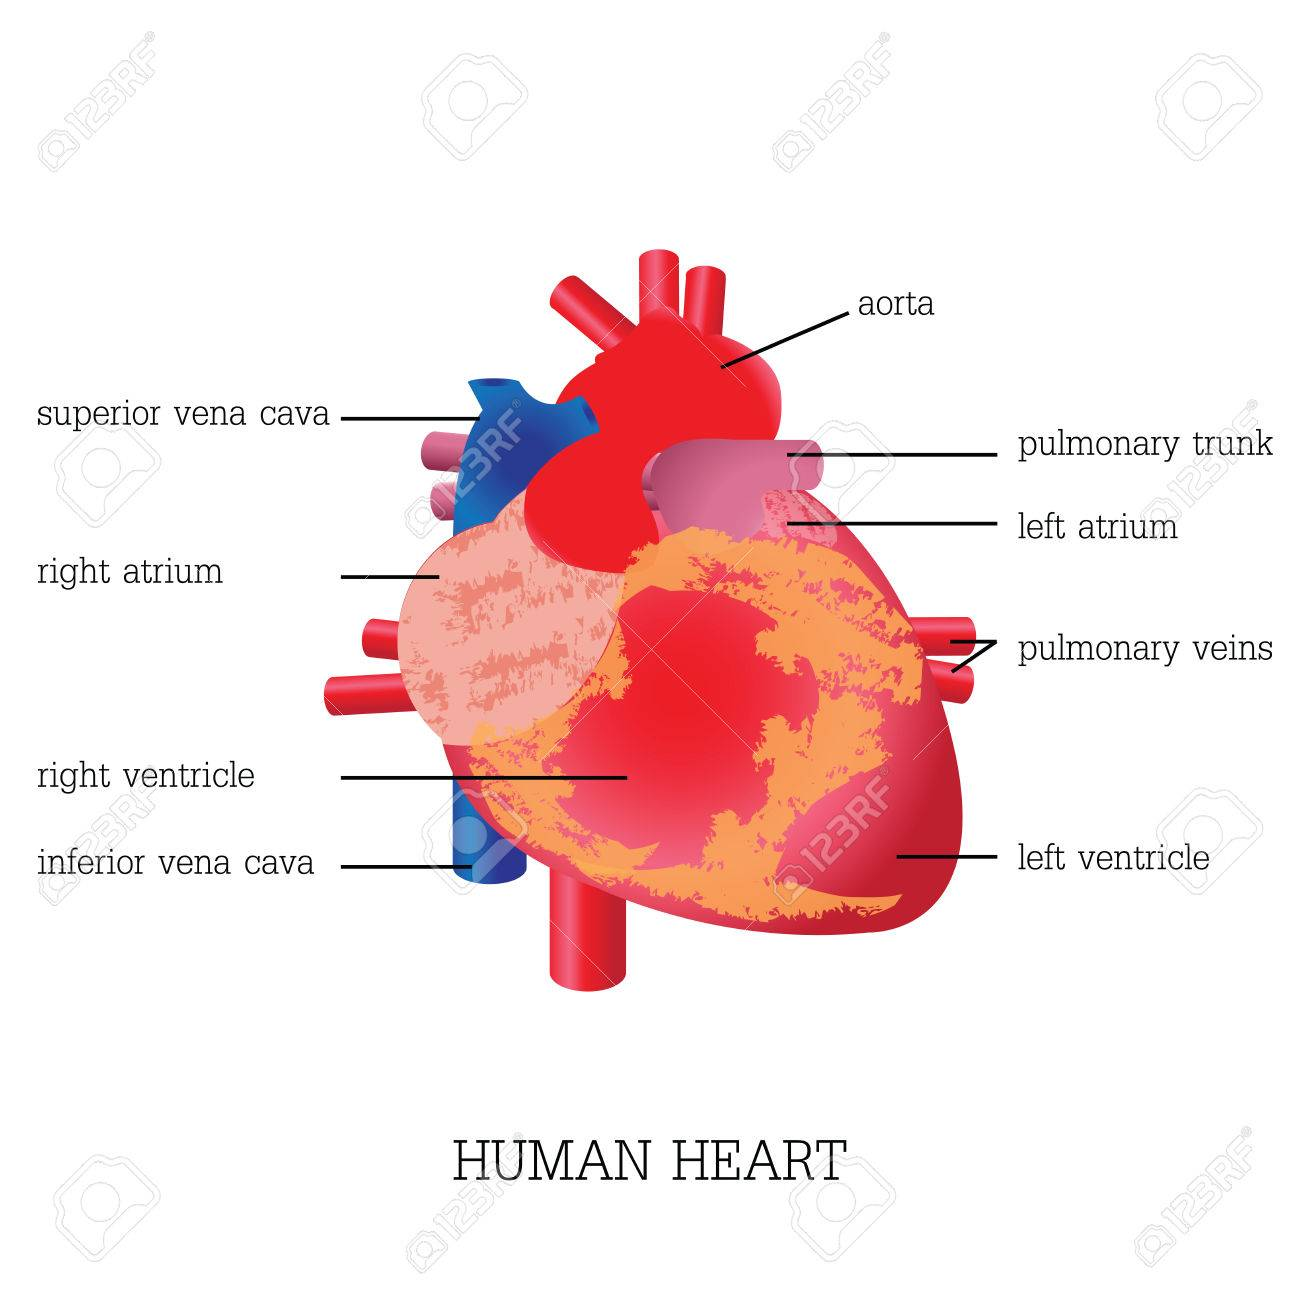 Structure And Function Of Human Heart Systemhuman Heart System